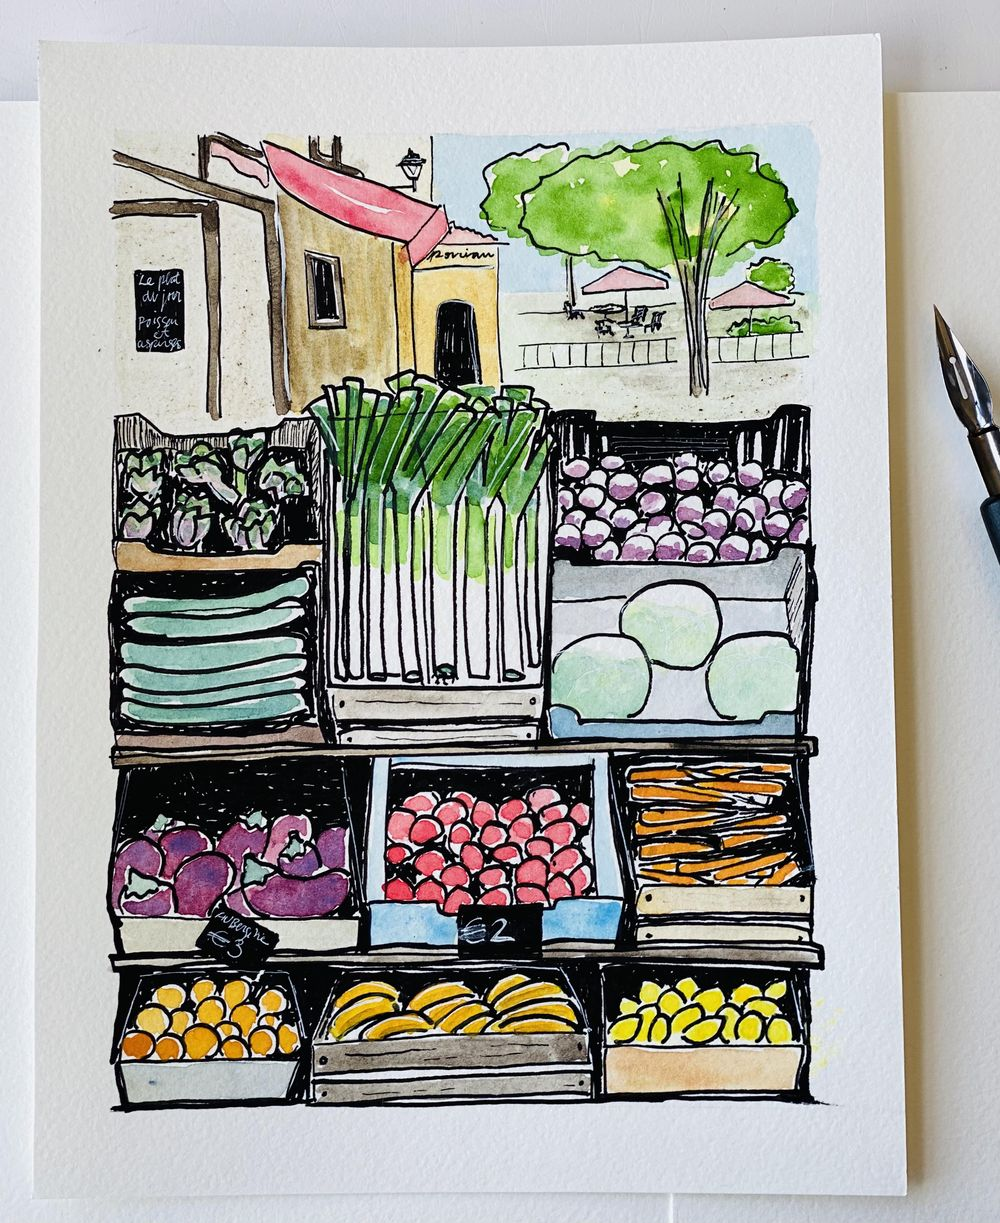 Farmer's market in France - image 1 - student project